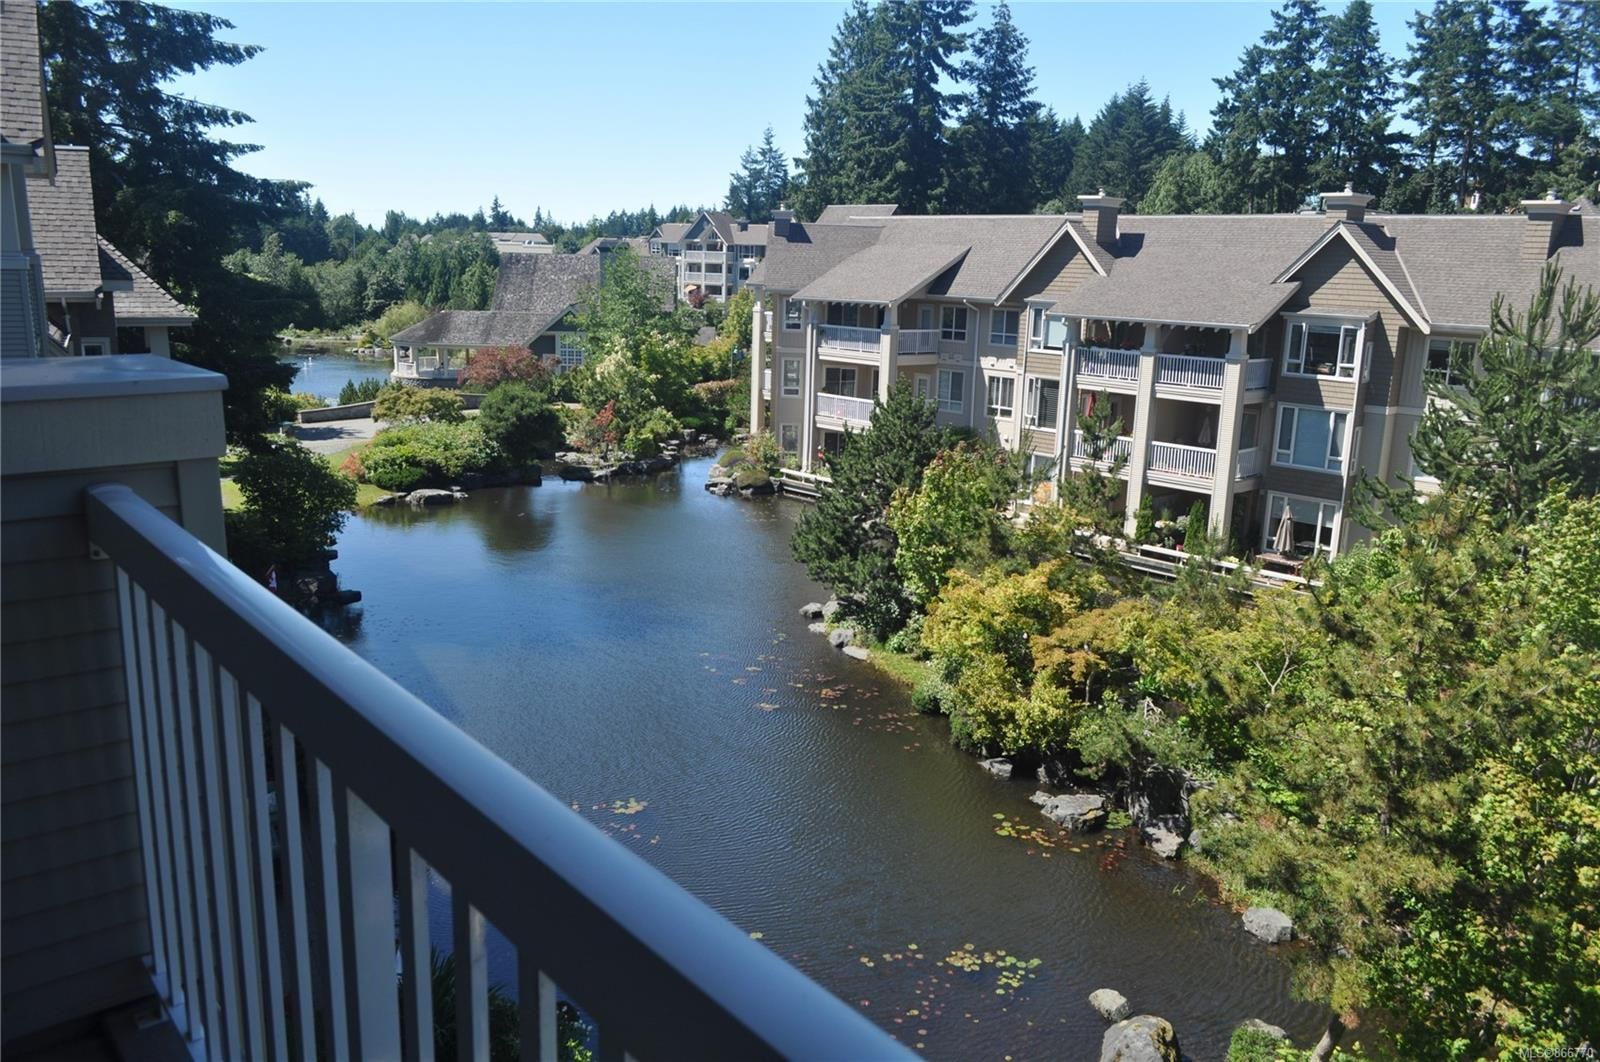 Main Photo: 401 5685 Edgewater Lane in : Na North Nanaimo Condo for sale (Nanaimo)  : MLS®# 866770